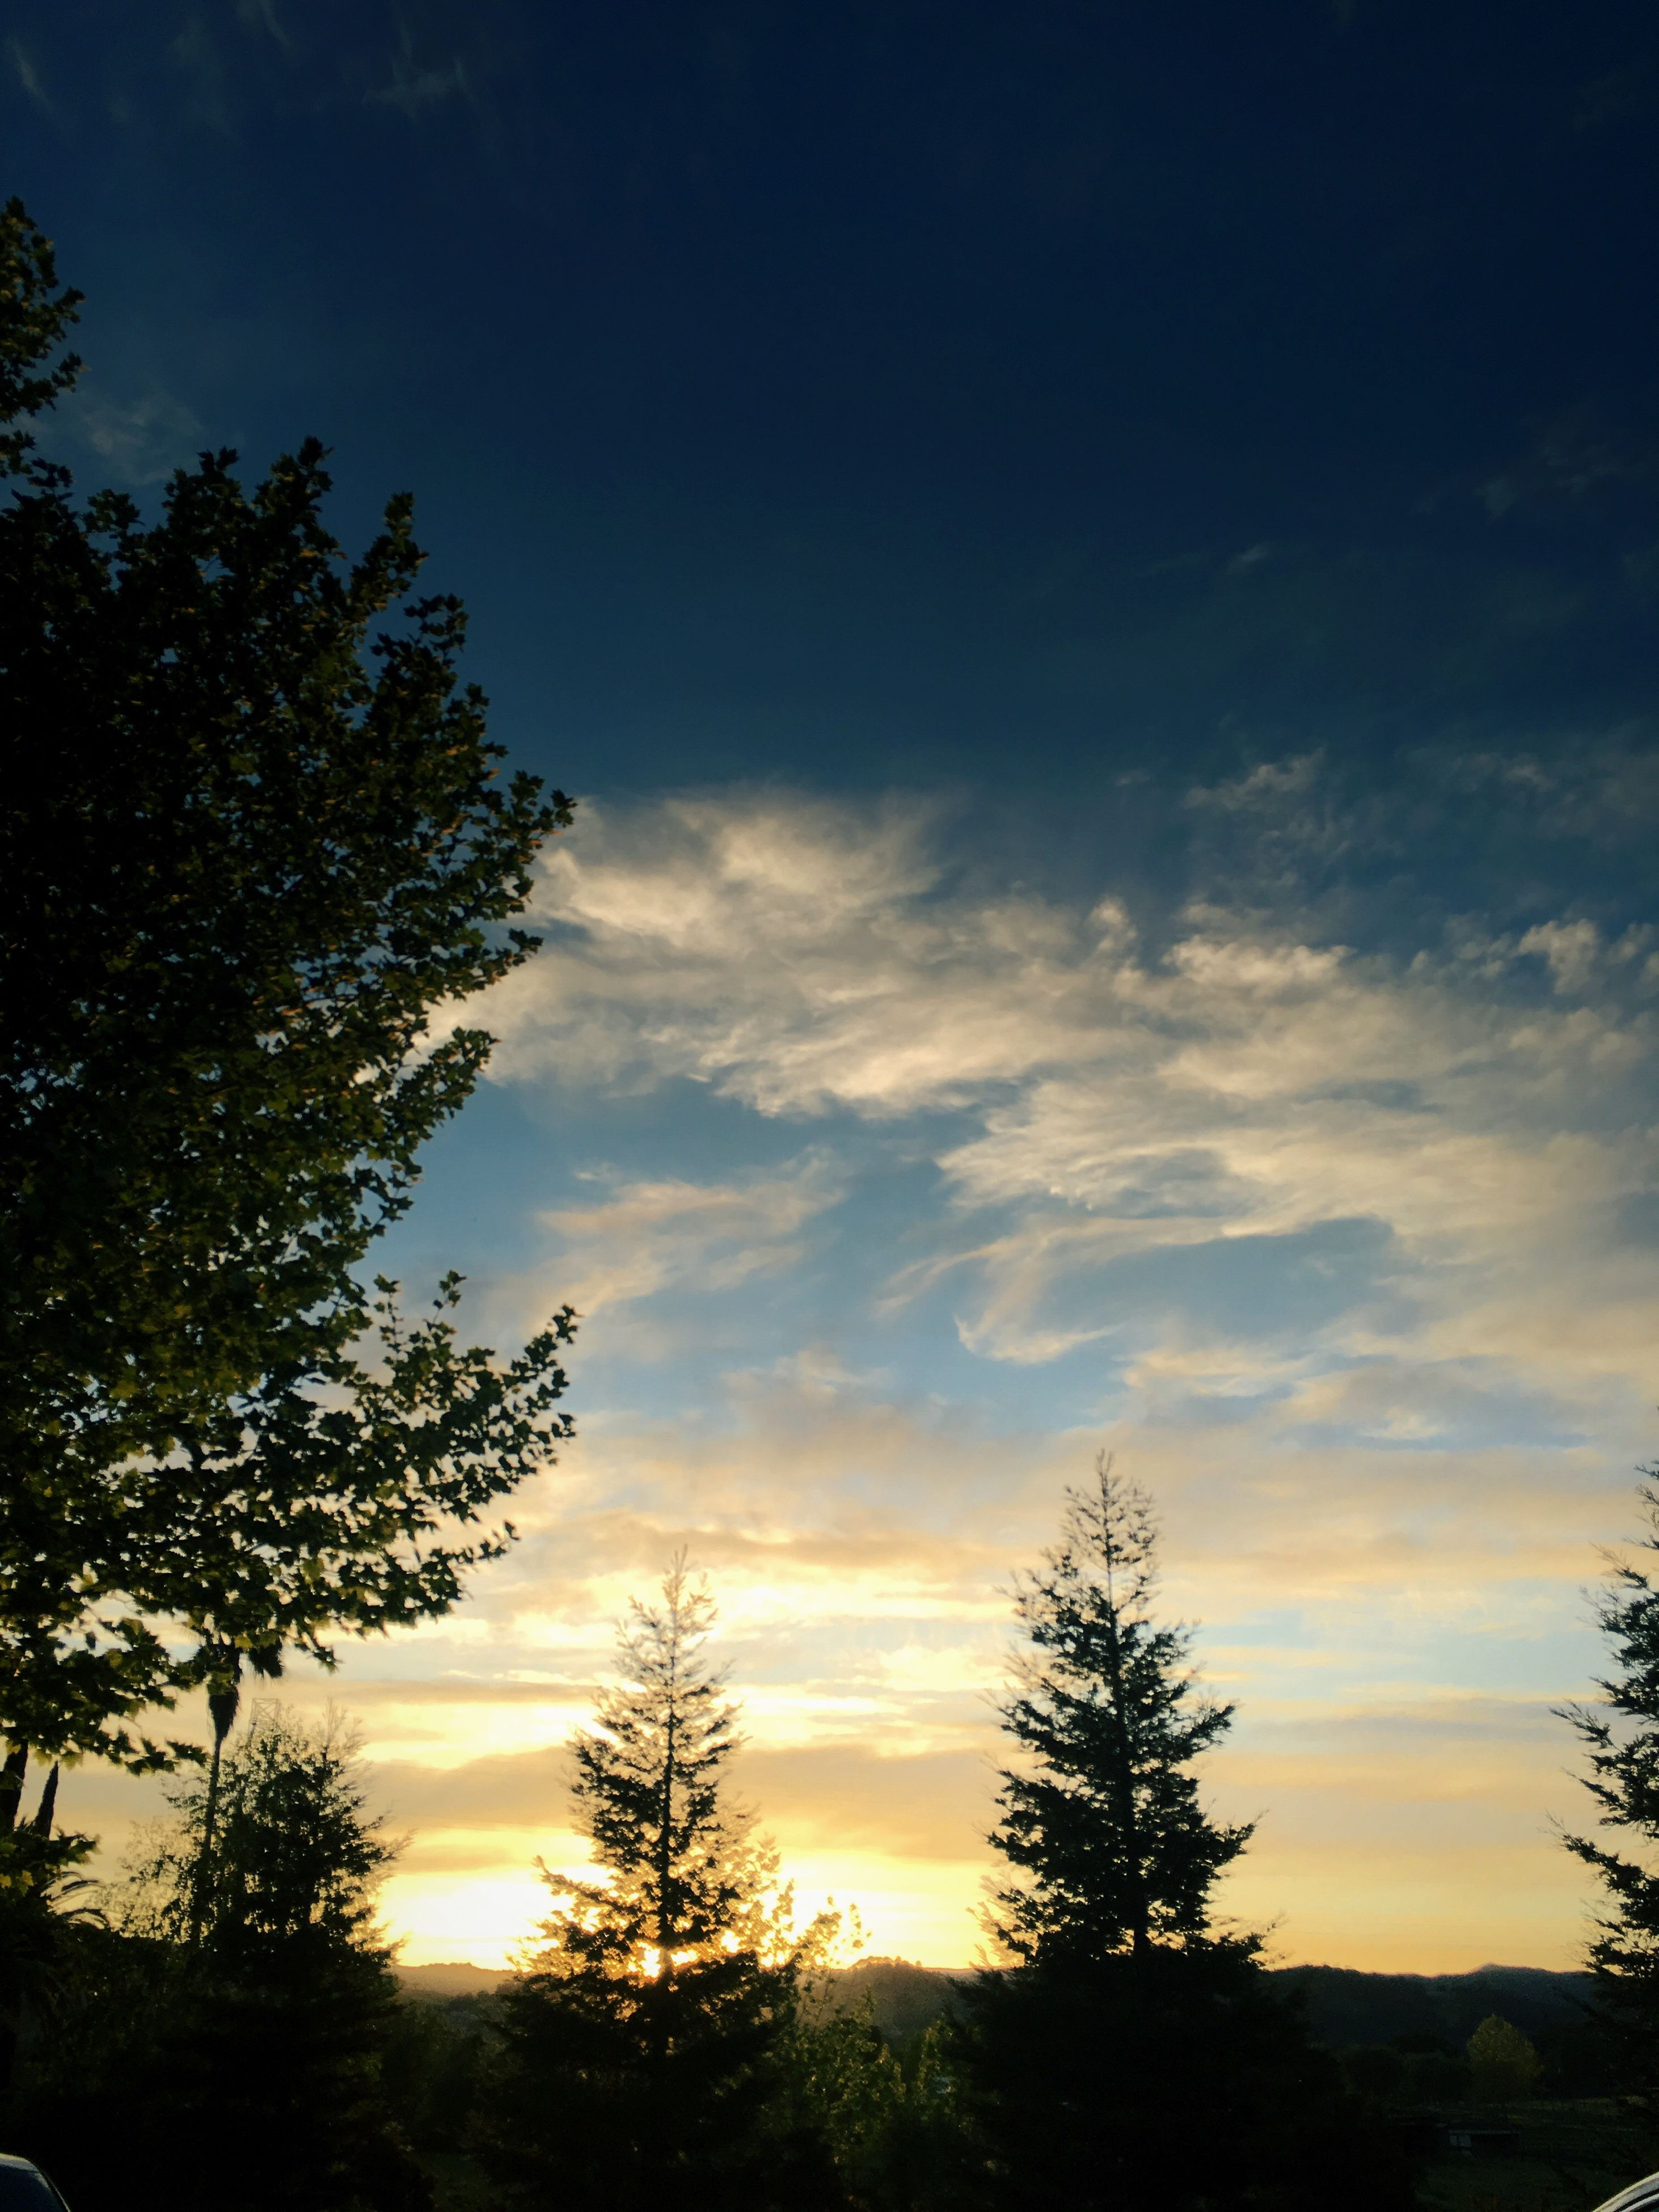 tree, silhouette, sunset, tranquil scene, tranquility, growth, scenics, sky, beauty in nature, nature, cloud, sun, cloud - sky, branch, outdoors, outline, no people, solitude, cloudy, high section, remote, non-urban scene, atmospheric mood